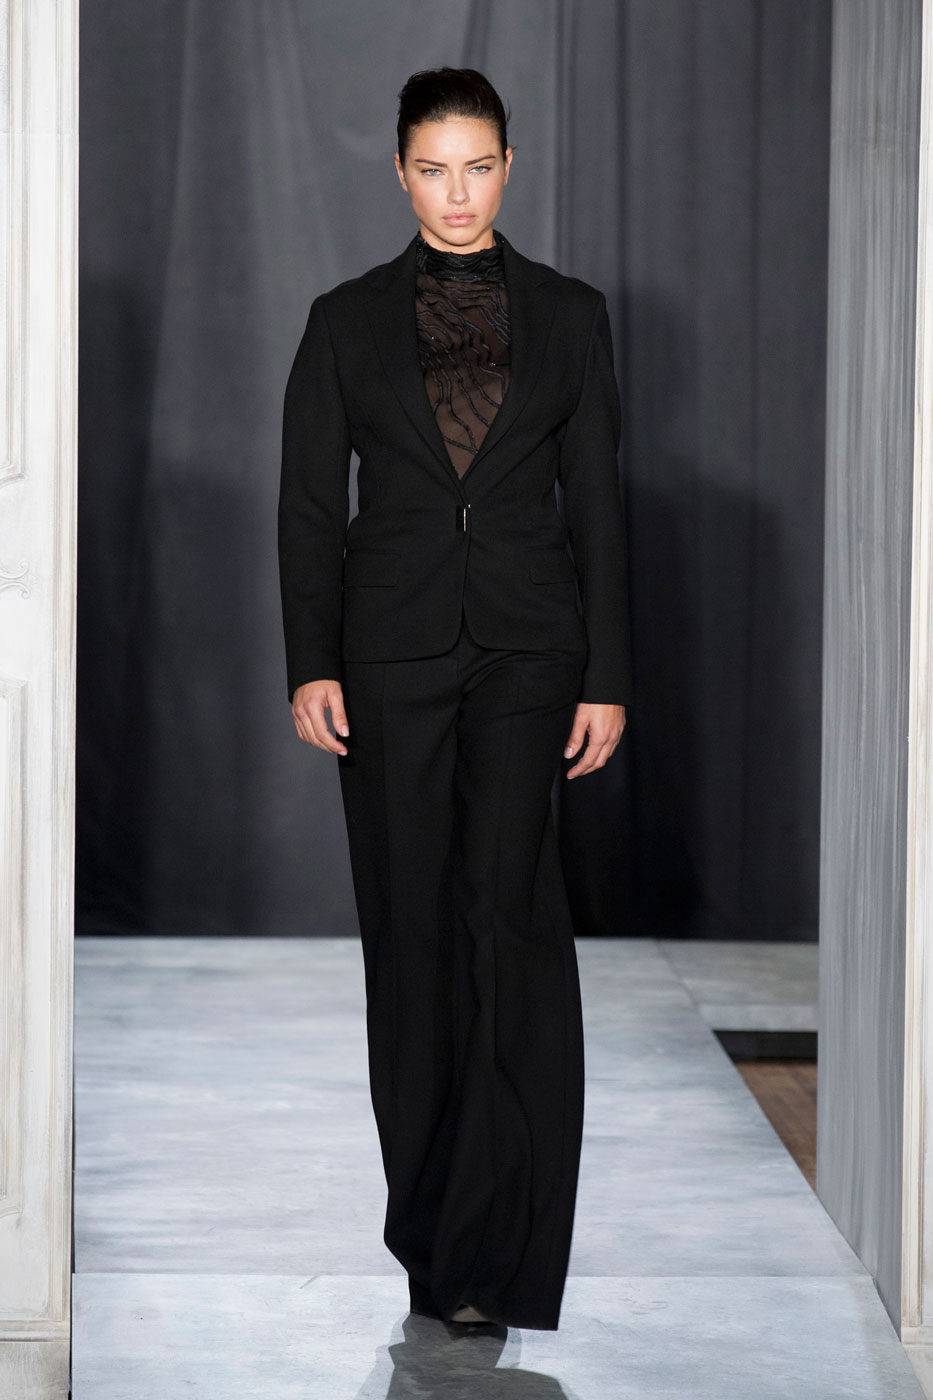 Jason Wu and the Supers